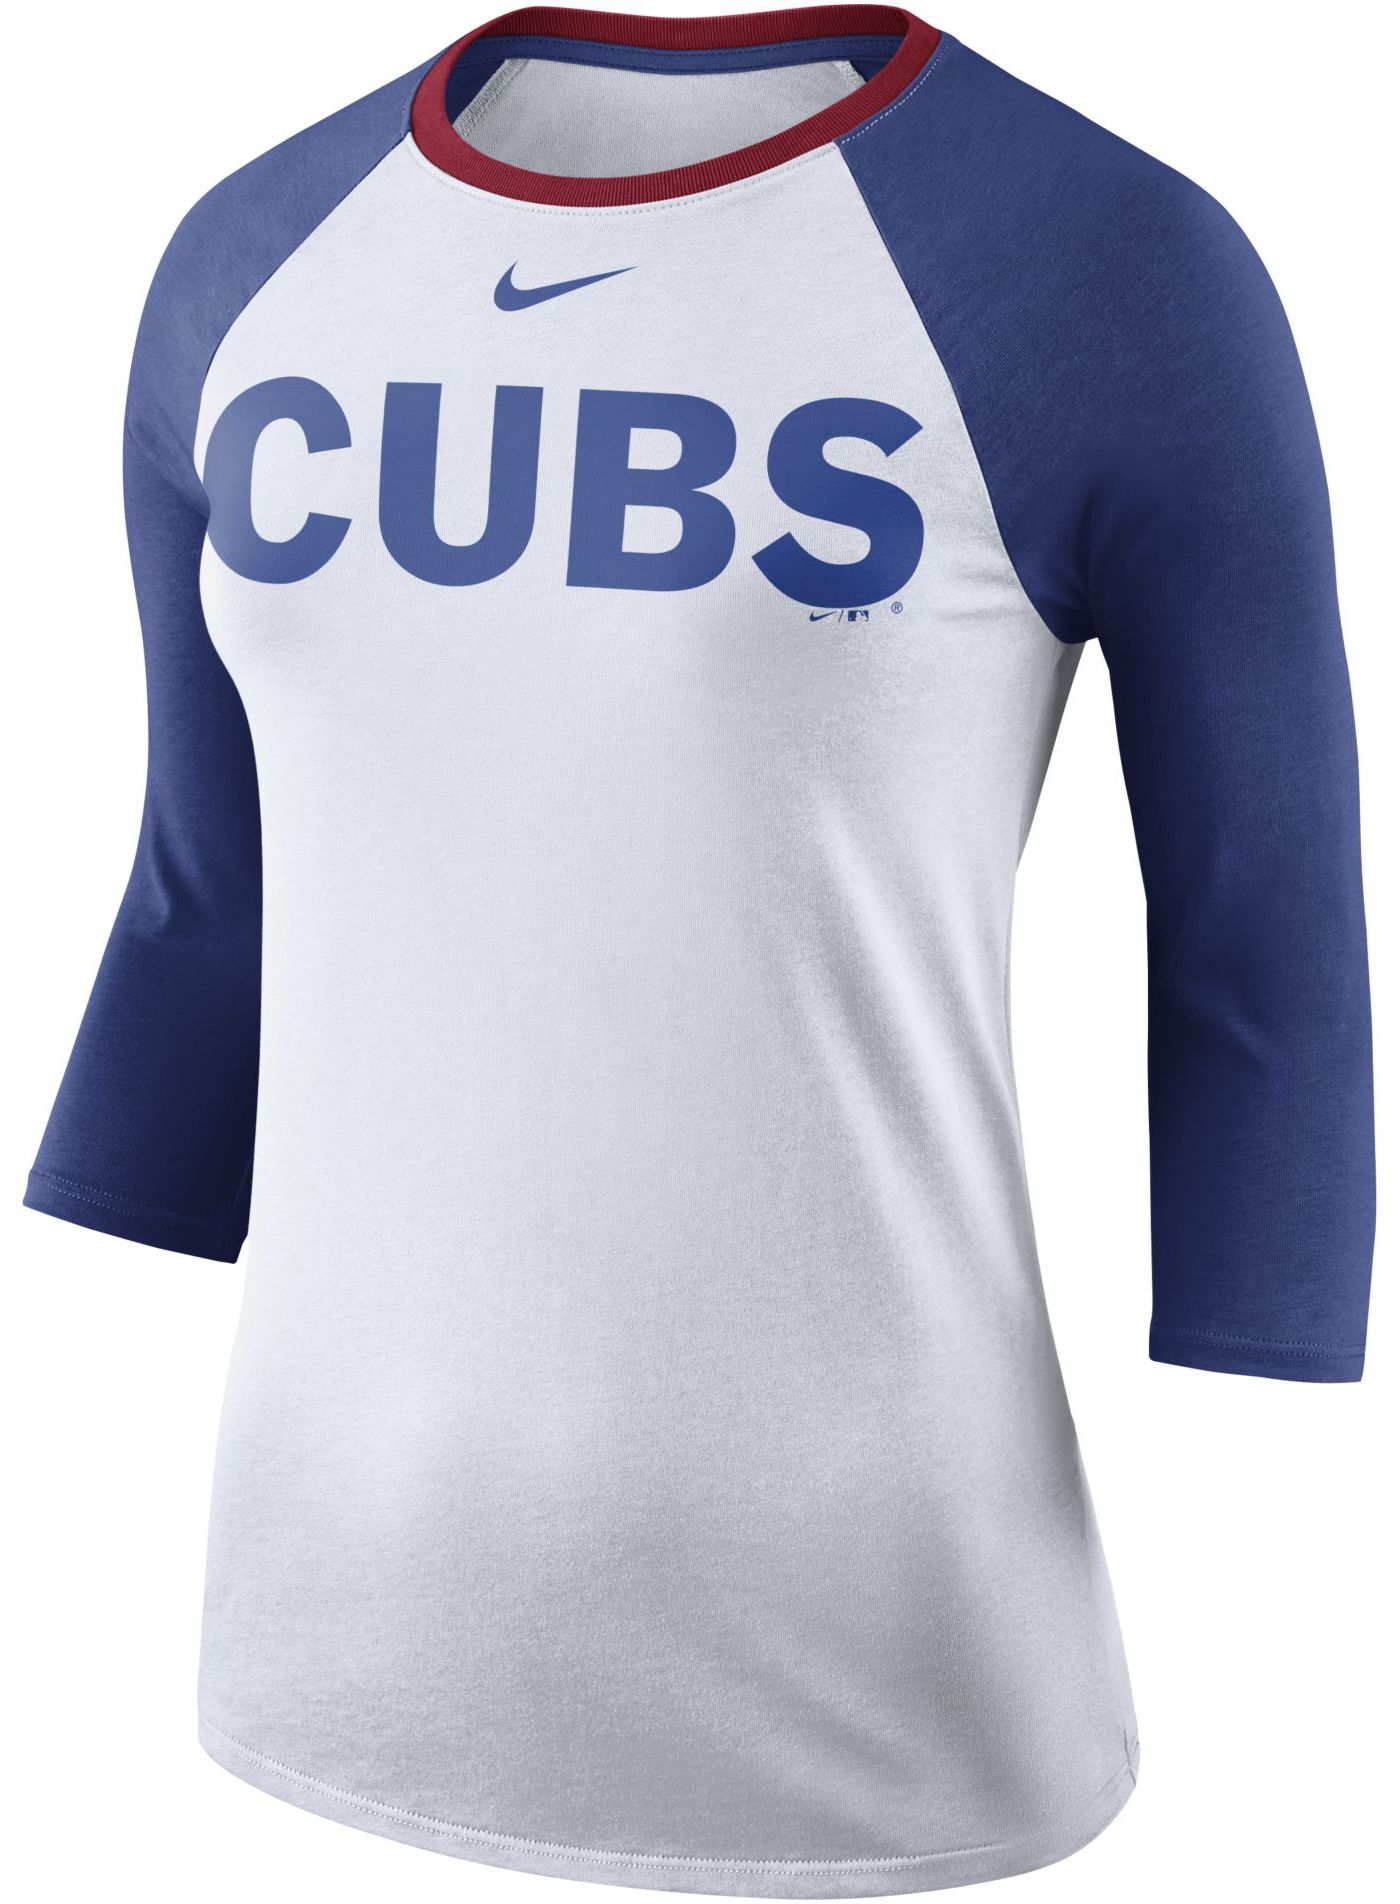 Nike Women's Chicago Cubs Raglan Tri-Blend Three-Quarter Sleeve Shirt